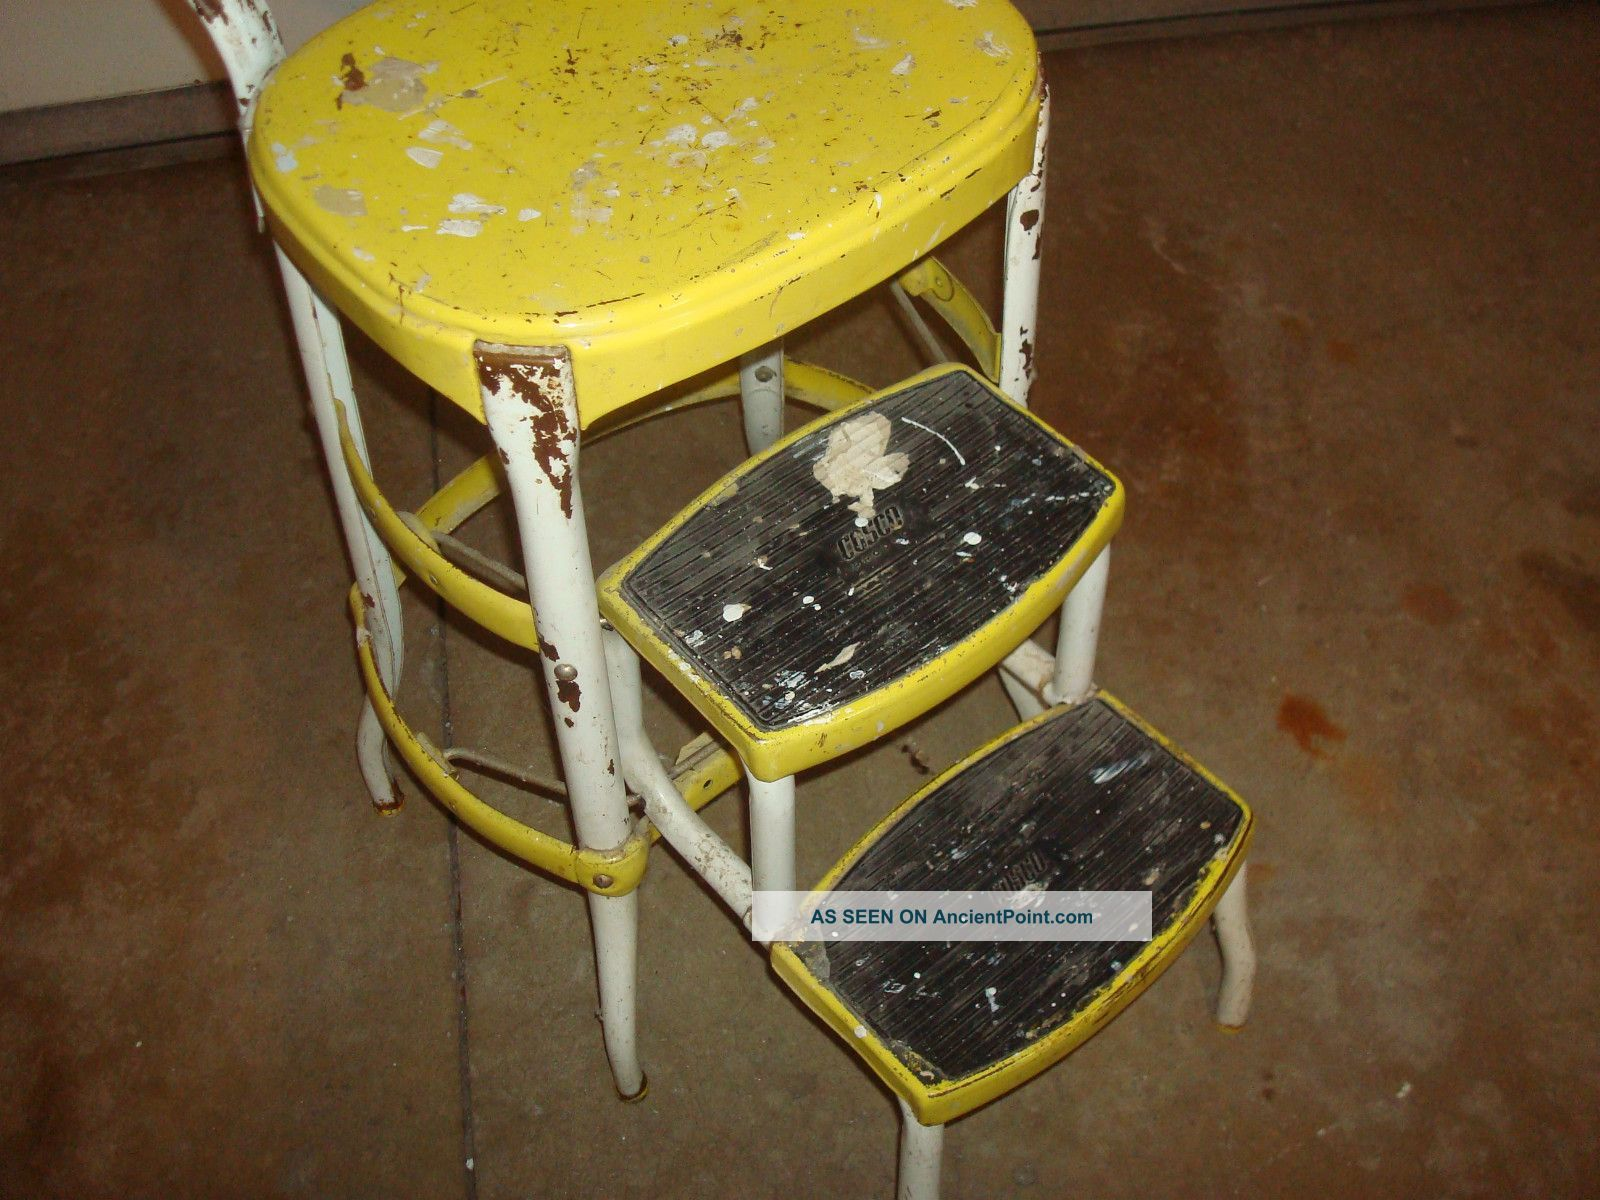 cosco step stools chairs | Vintage Retro Yellow Cosco Step Stool Mid - Century Kitchen Steel & cosco step stools chairs | Vintage Retro Yellow Cosco Step Stool ... islam-shia.org